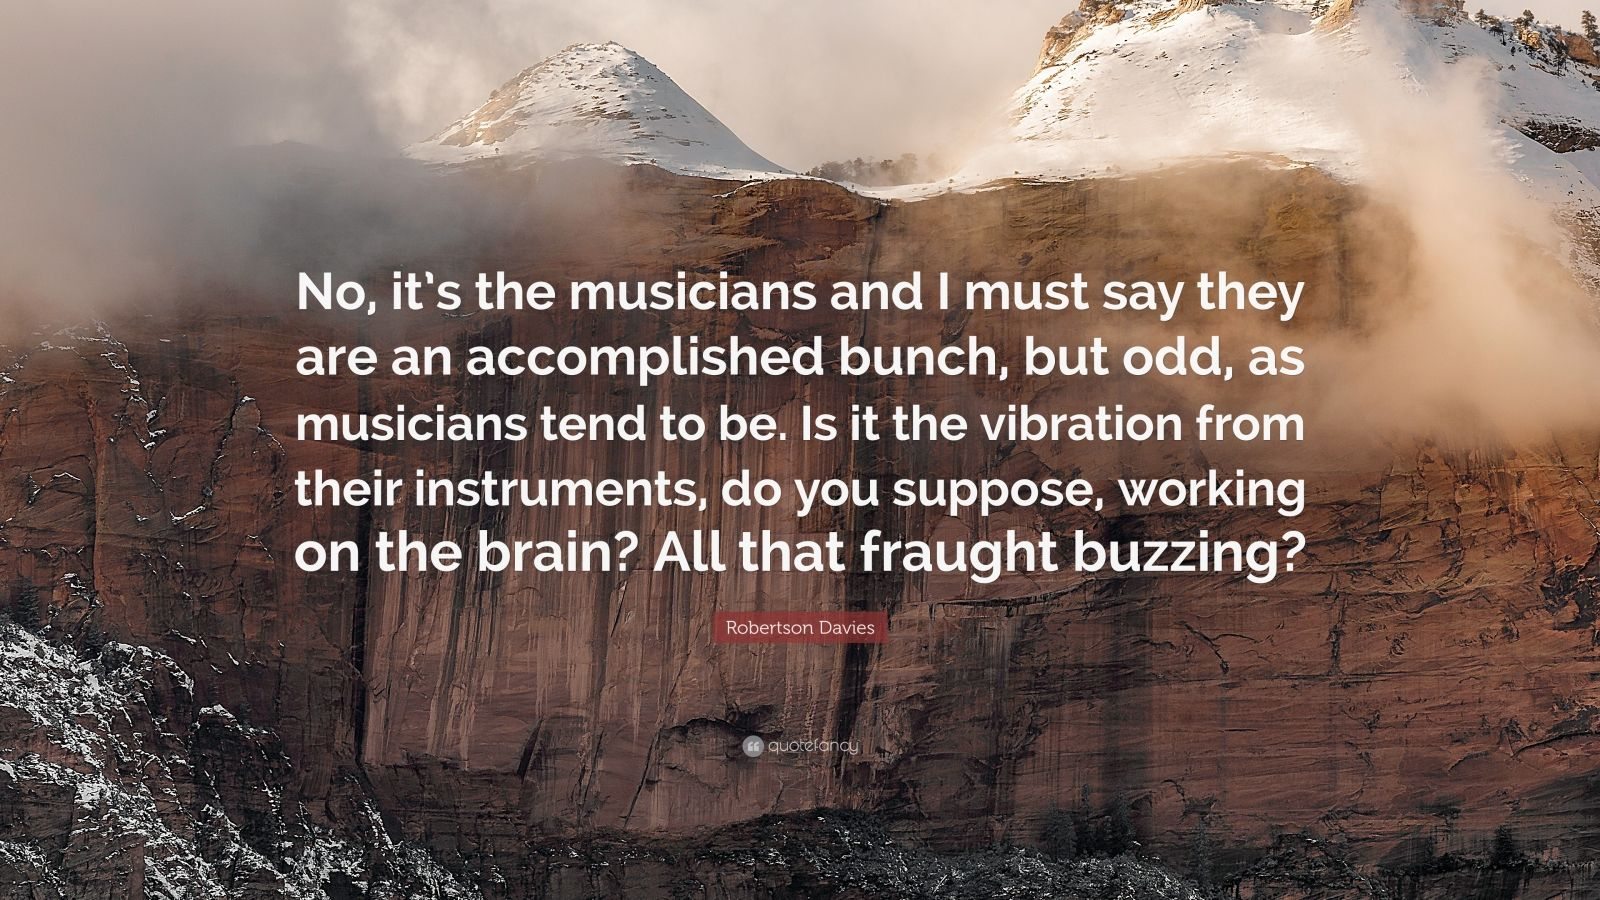 """Robertson Davies Quote: """"No, it's the musicians and I must say they are an accomplished bunch, but odd, as musicians tend to be. Is it the vibration from their instruments, do you suppose, working on the brain? All that fraught buzzing?"""""""